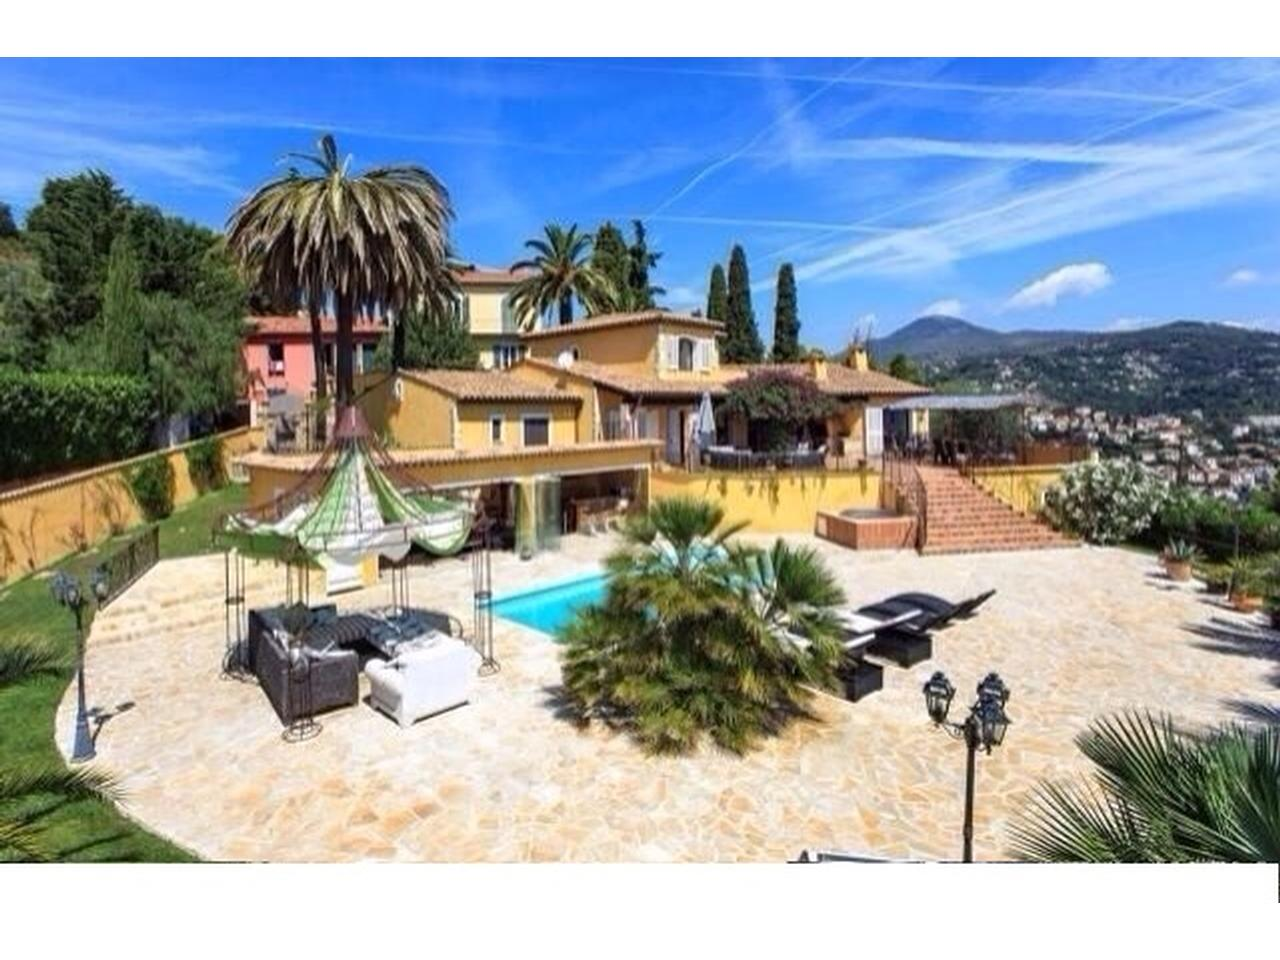 Immobilier nice vue mer maison nice villa neo provencale a for Achat maison nice